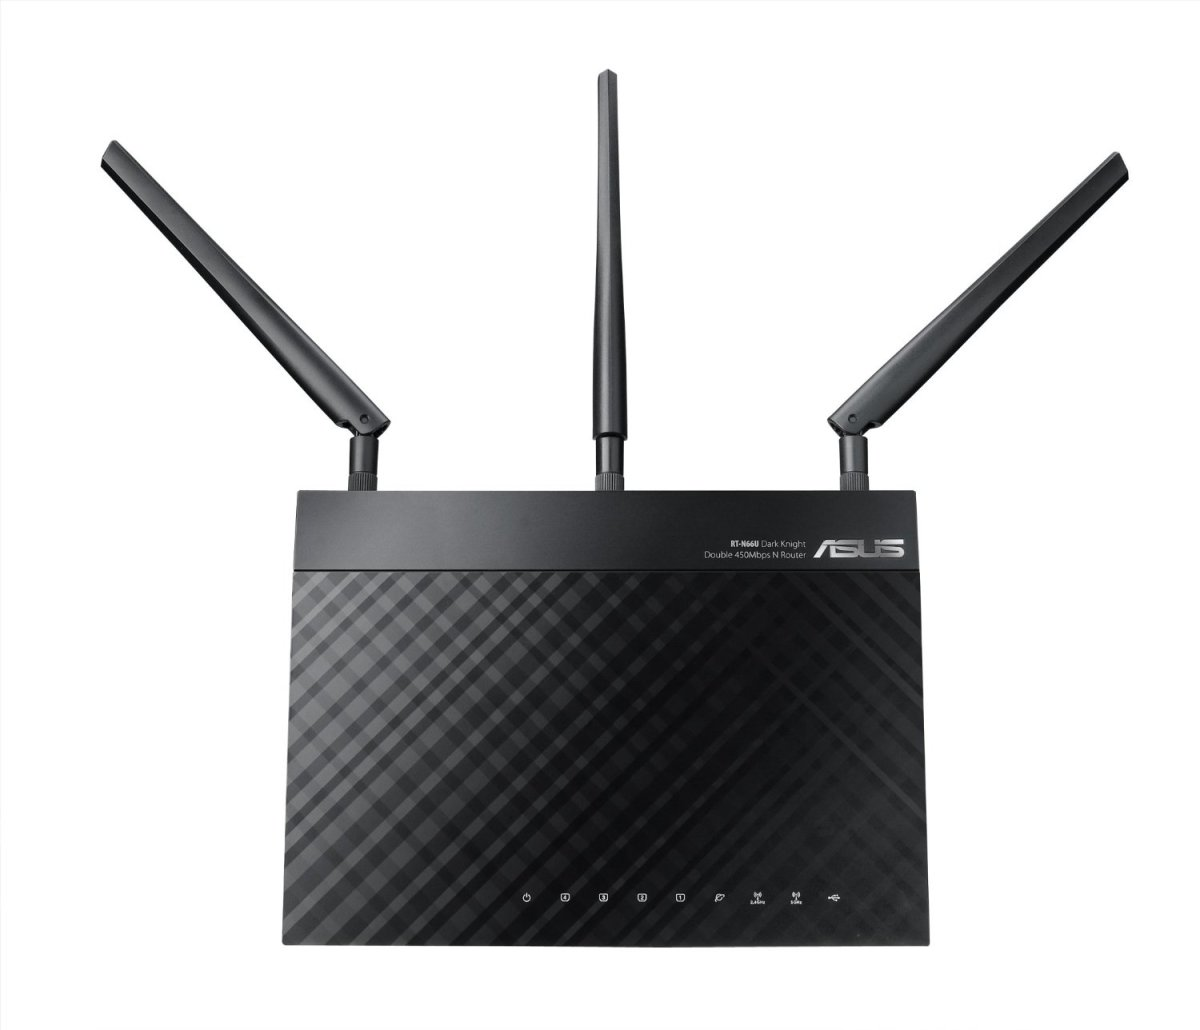 ASUS RT-N66U Dual-Band Wireless-N900 Gigabit Router is one of the best wireless router for most people right now